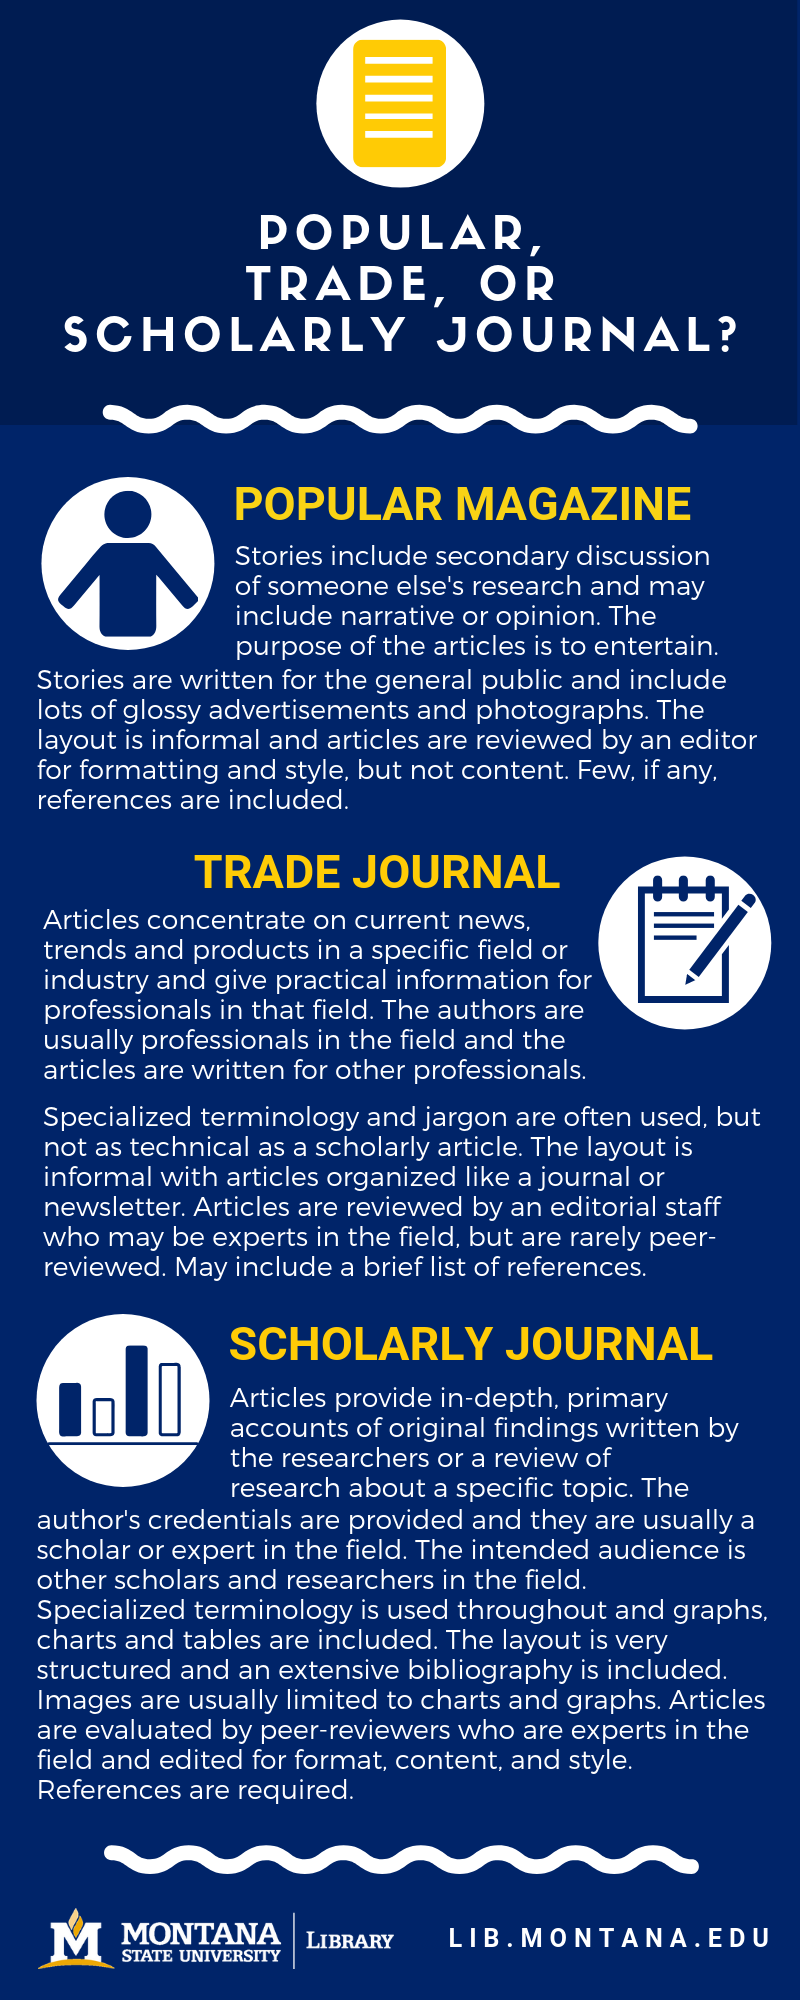 Infographic describing popular, trade, and scholarly articles and their differences. Link to larger image.